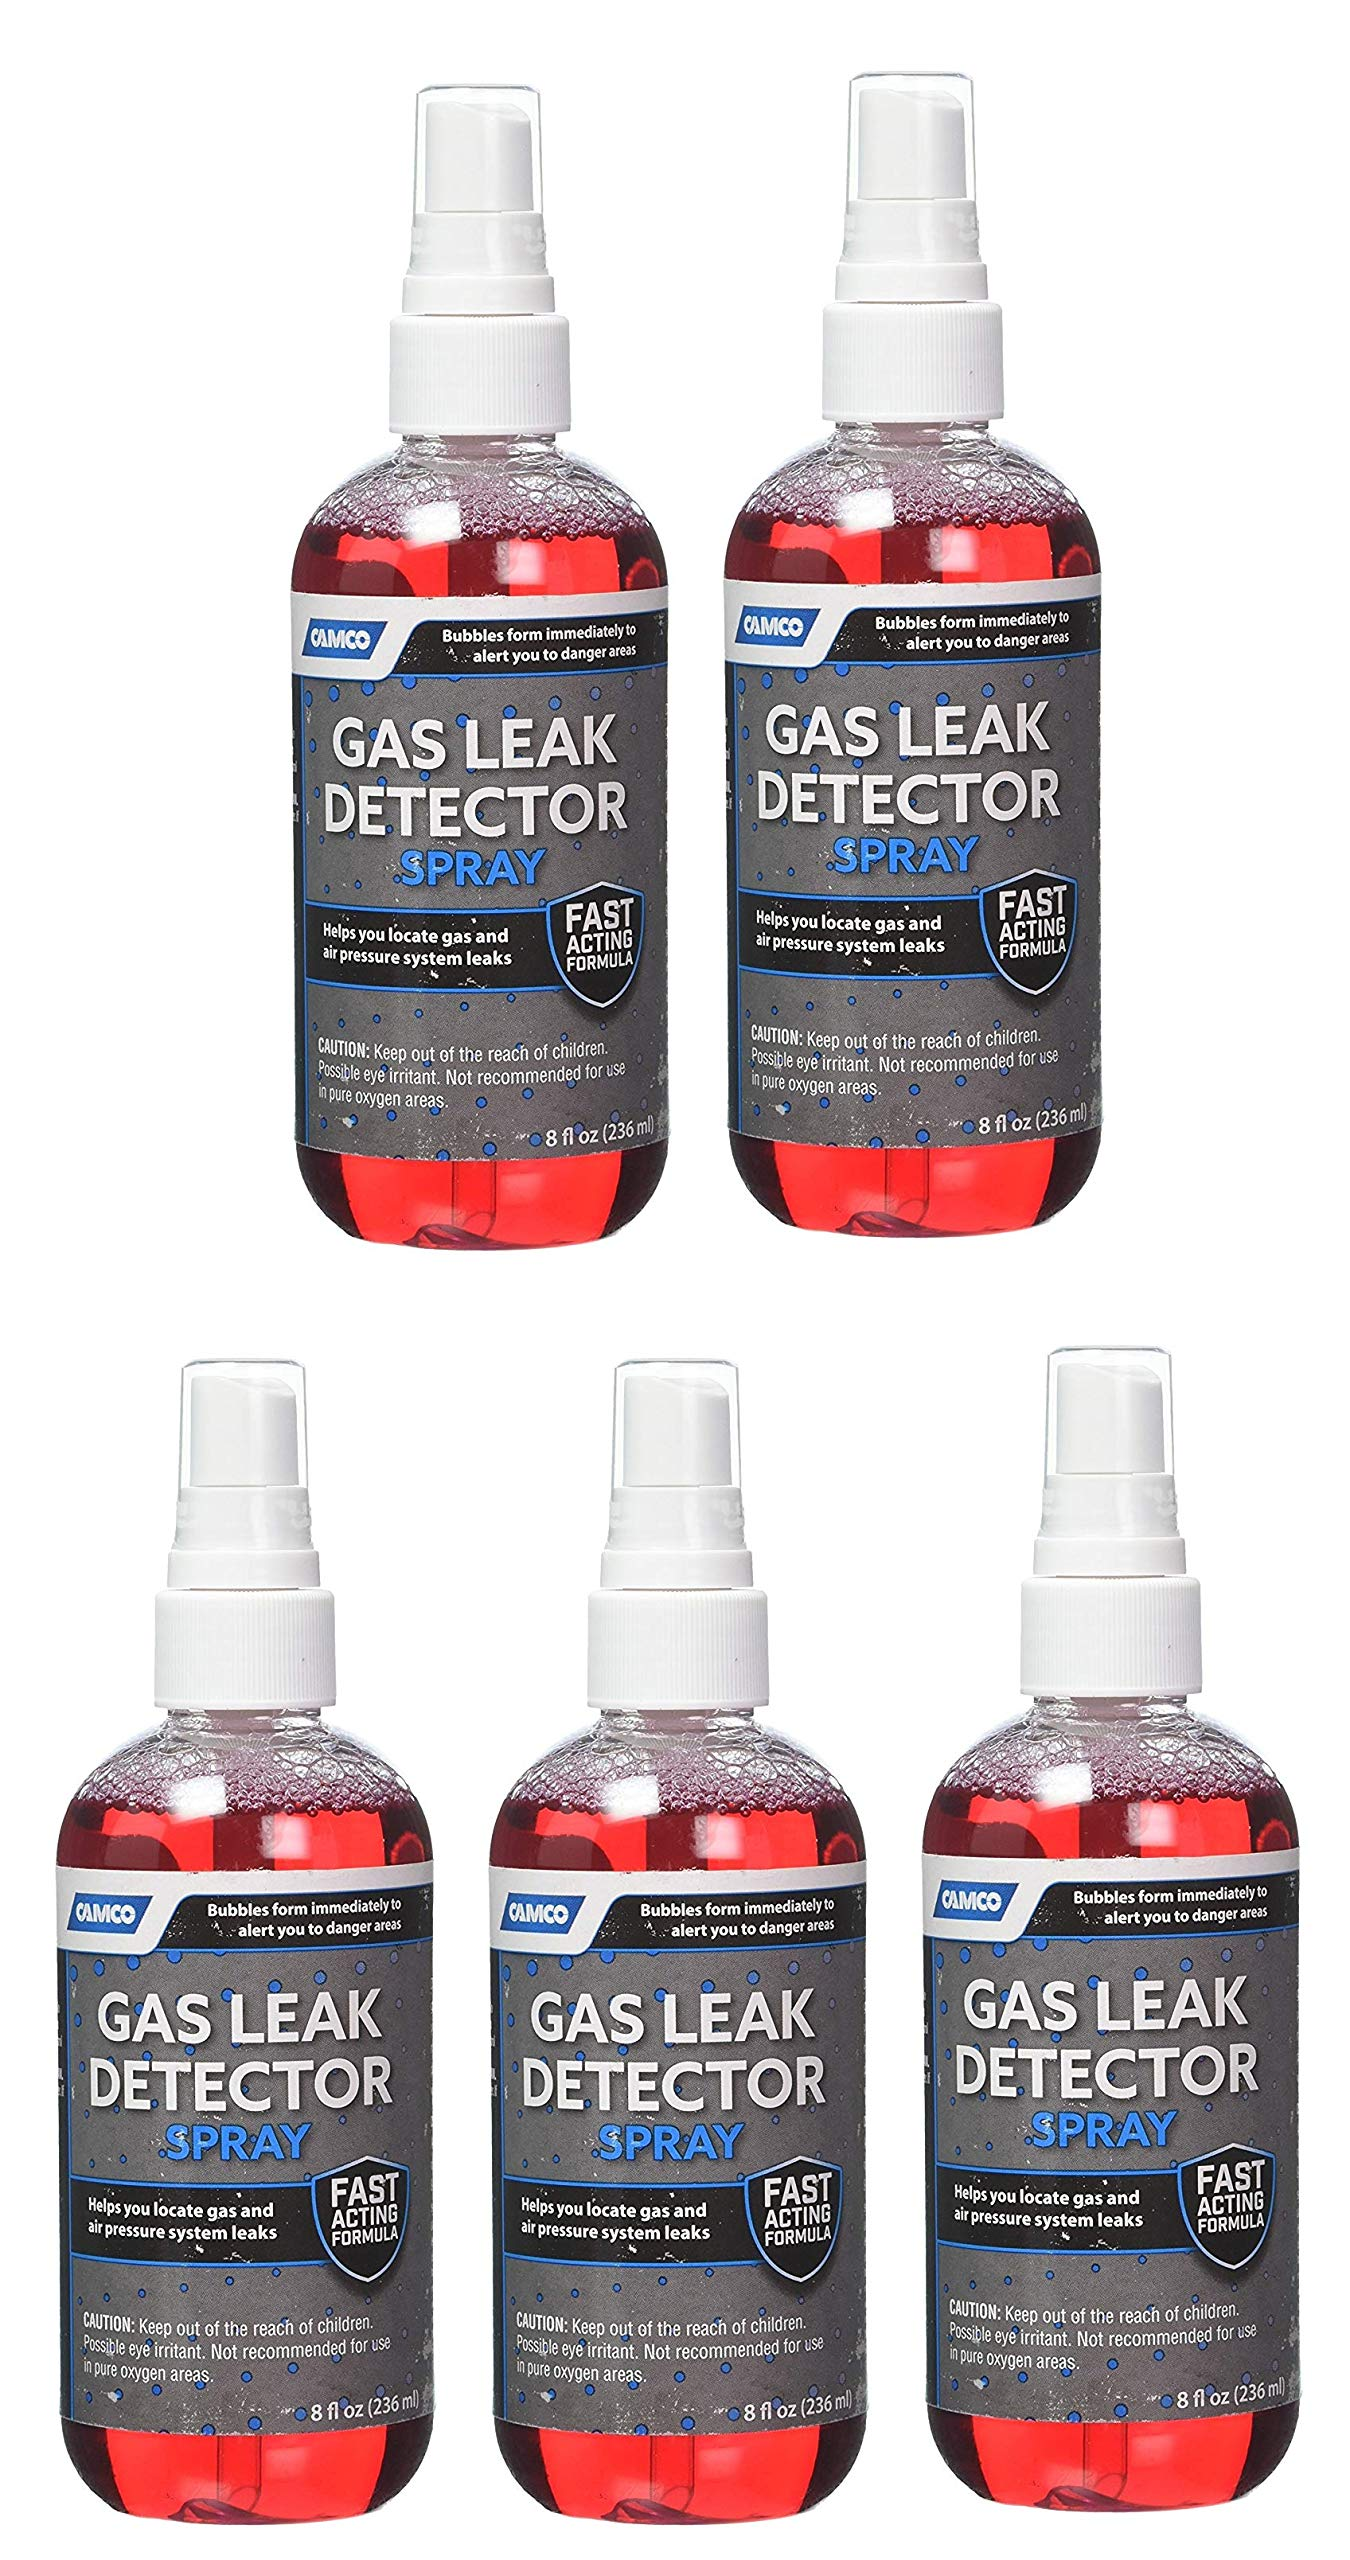 Camco 10324 Gas Leak Detector with Sprayer - 8 oz (8 Ounce - 5 Pack)